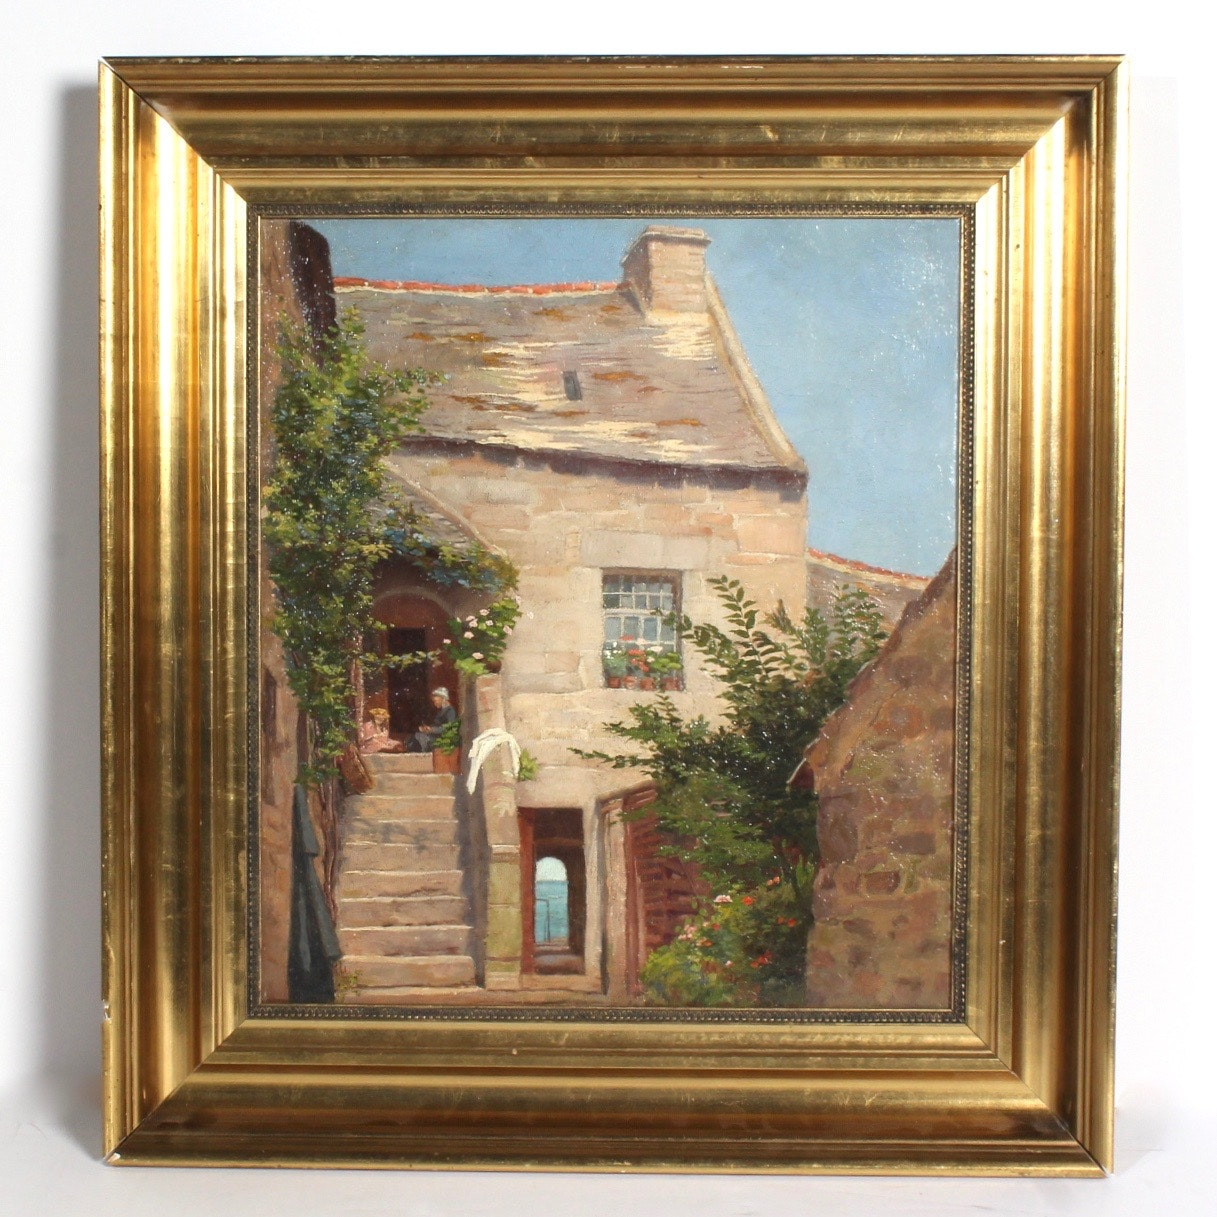 Oil Painting on Canvas of a European House